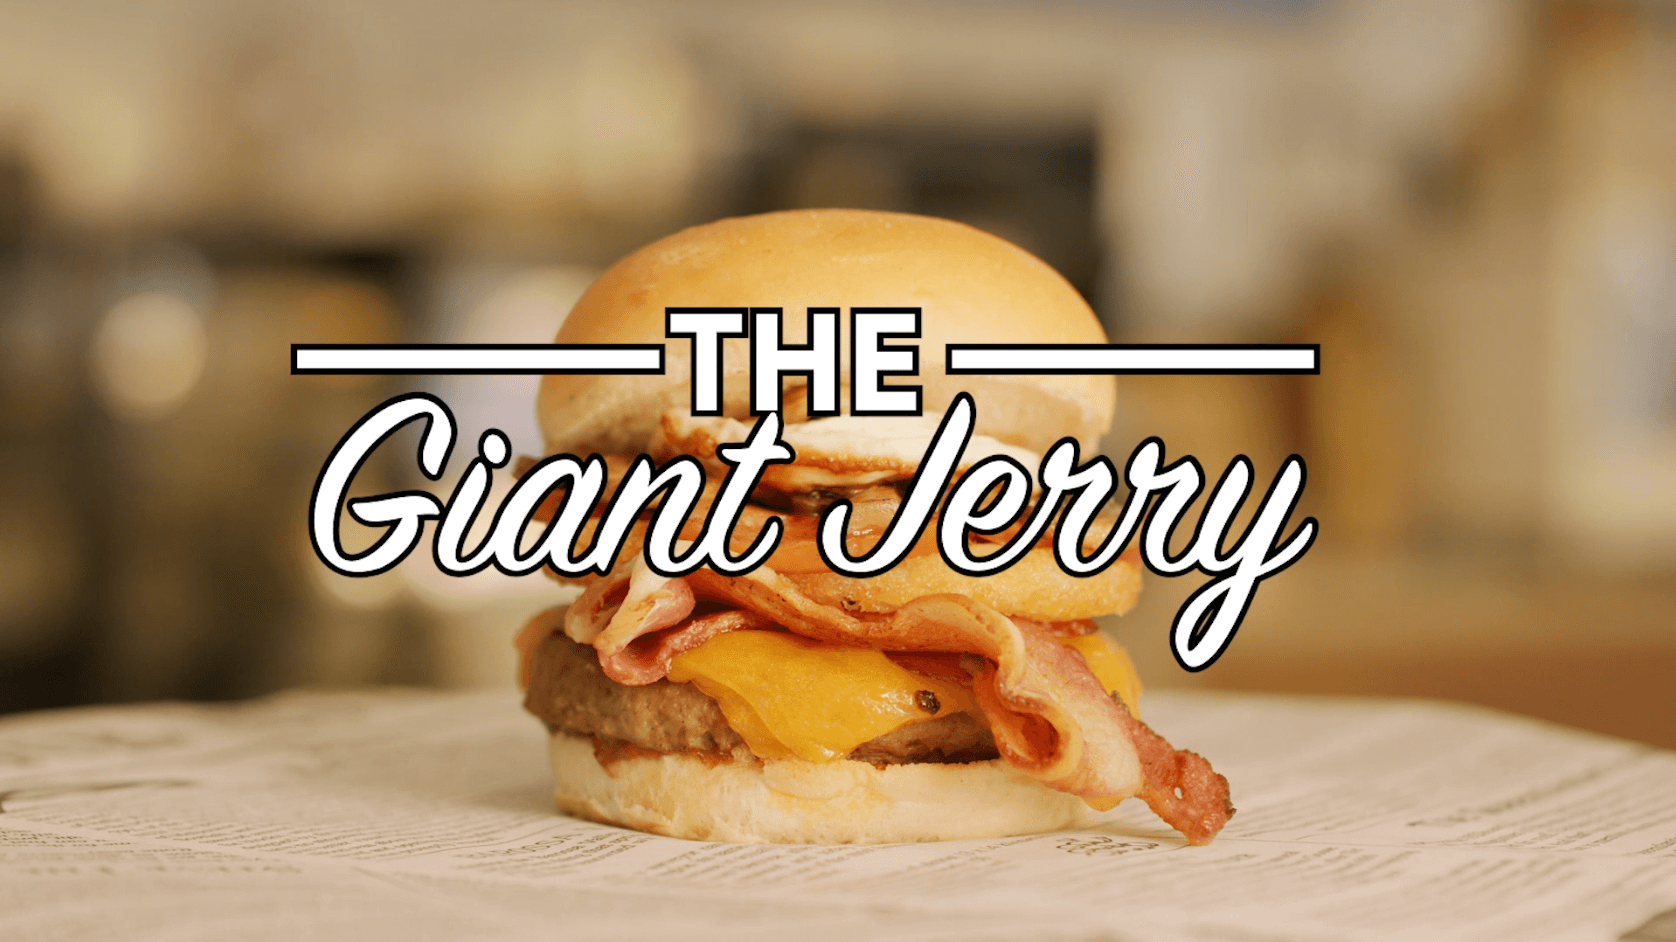 Giant-Jerry-Burger_2.jpg